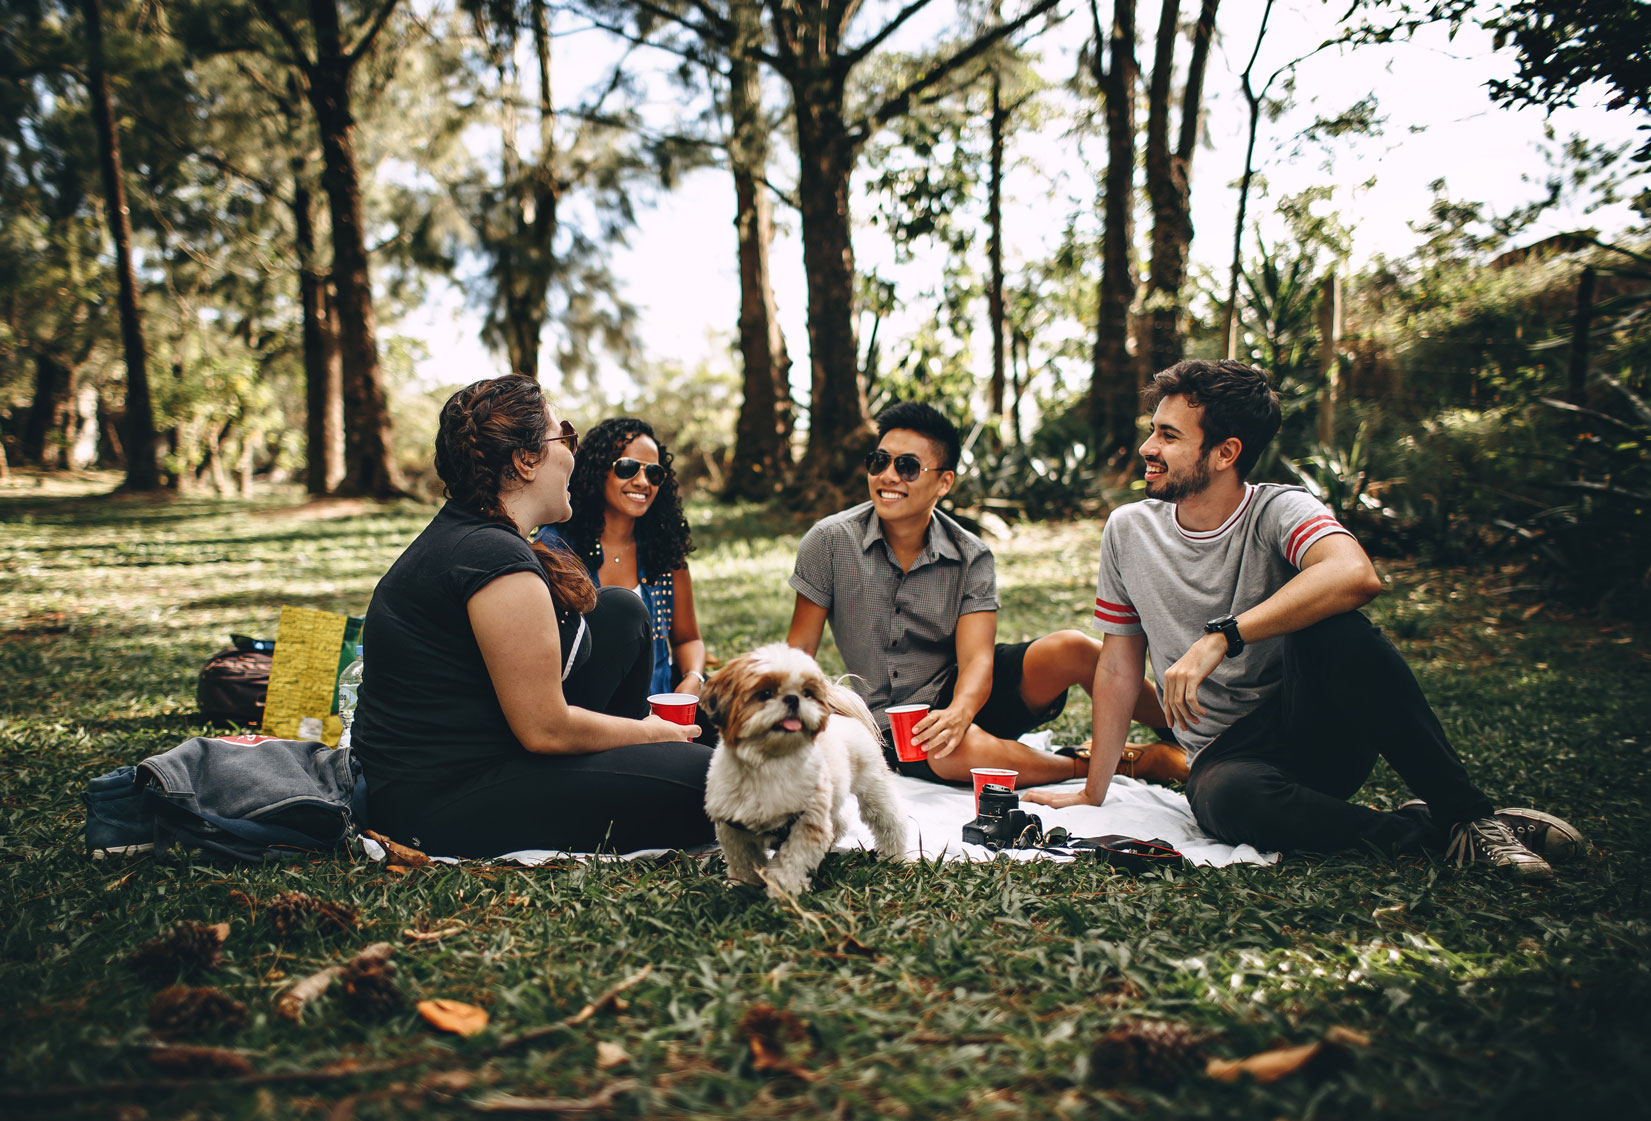 friends-at-picnic-with-dog.jpg